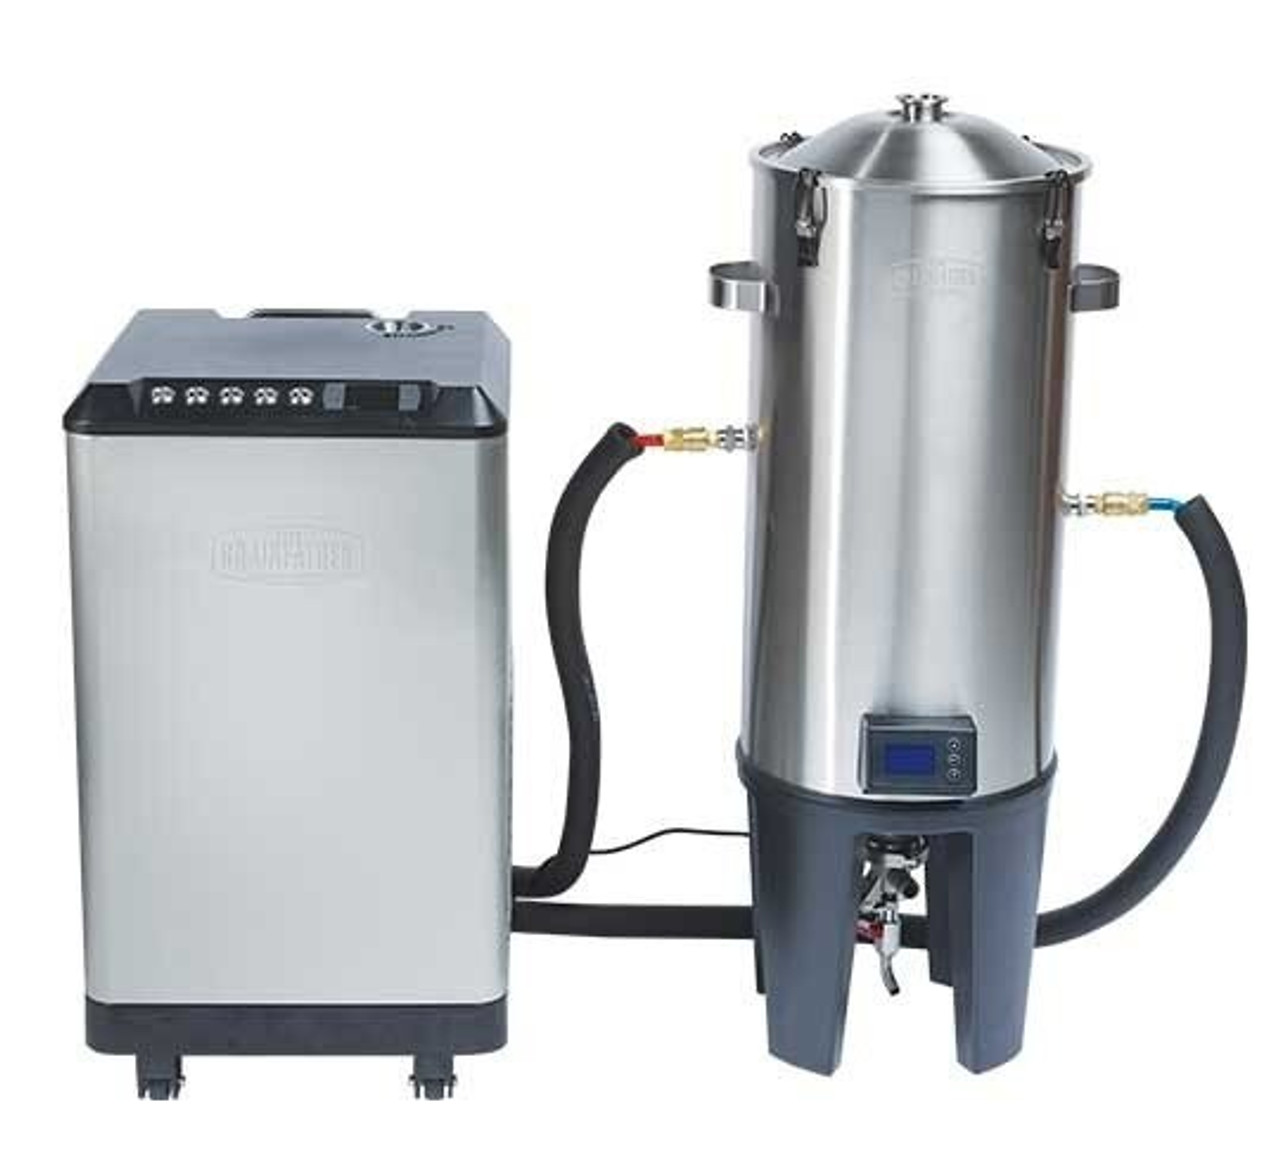 The Grainfather - Glycol Chiller w/ Cooling Connection Kit